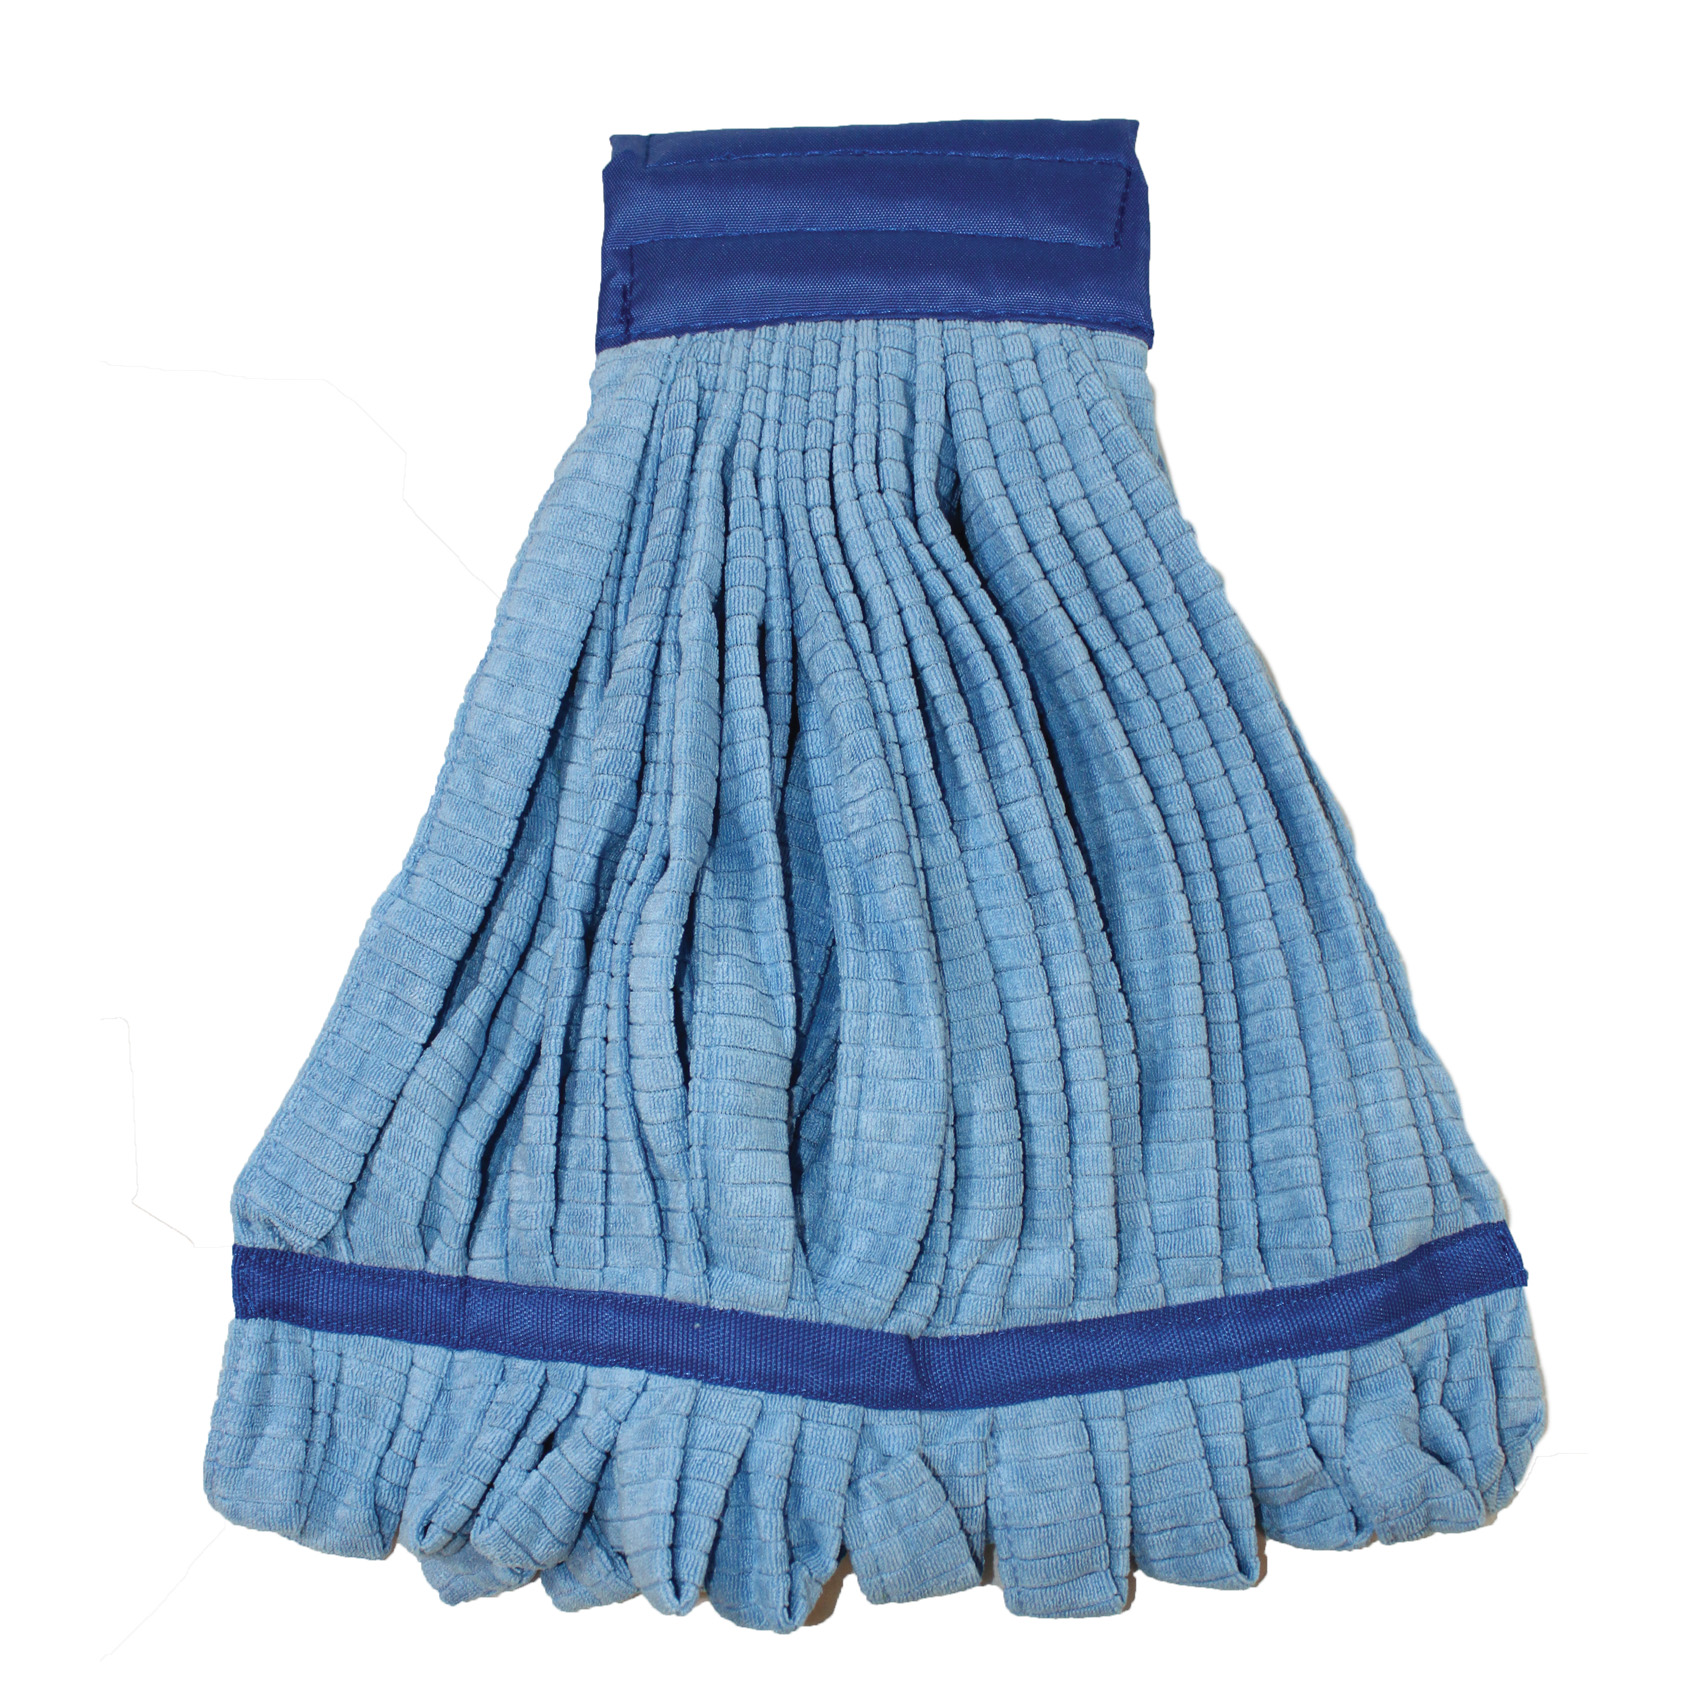 Impact Products LF0003 wet mop head